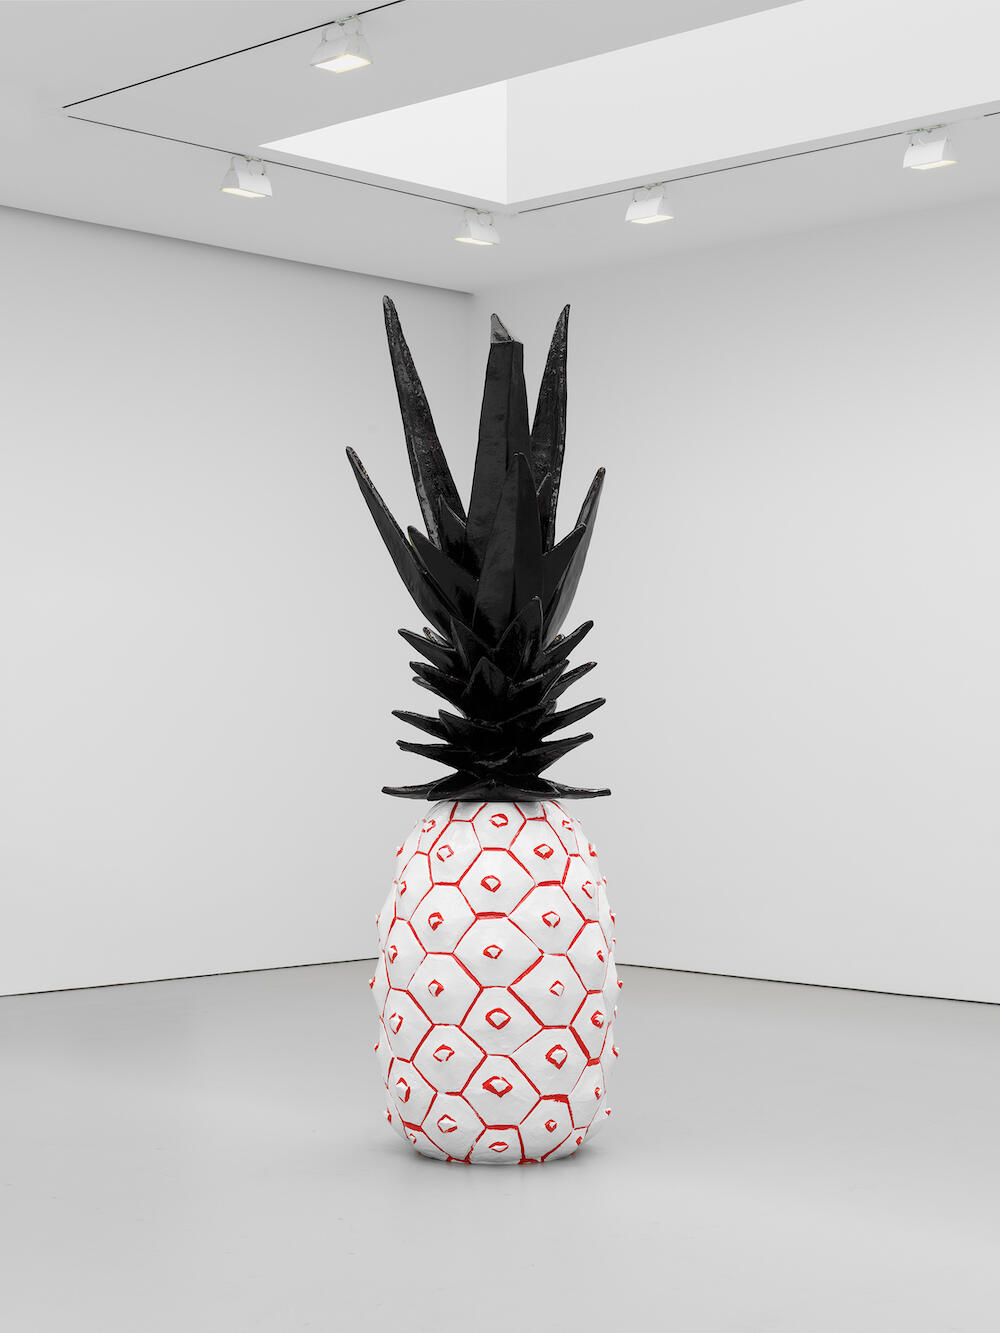 Rose Wylie   Pineapple 2020   Painted bronze in 2 parts   © Rose Wylie     Courtesy the artist and David Zwirner